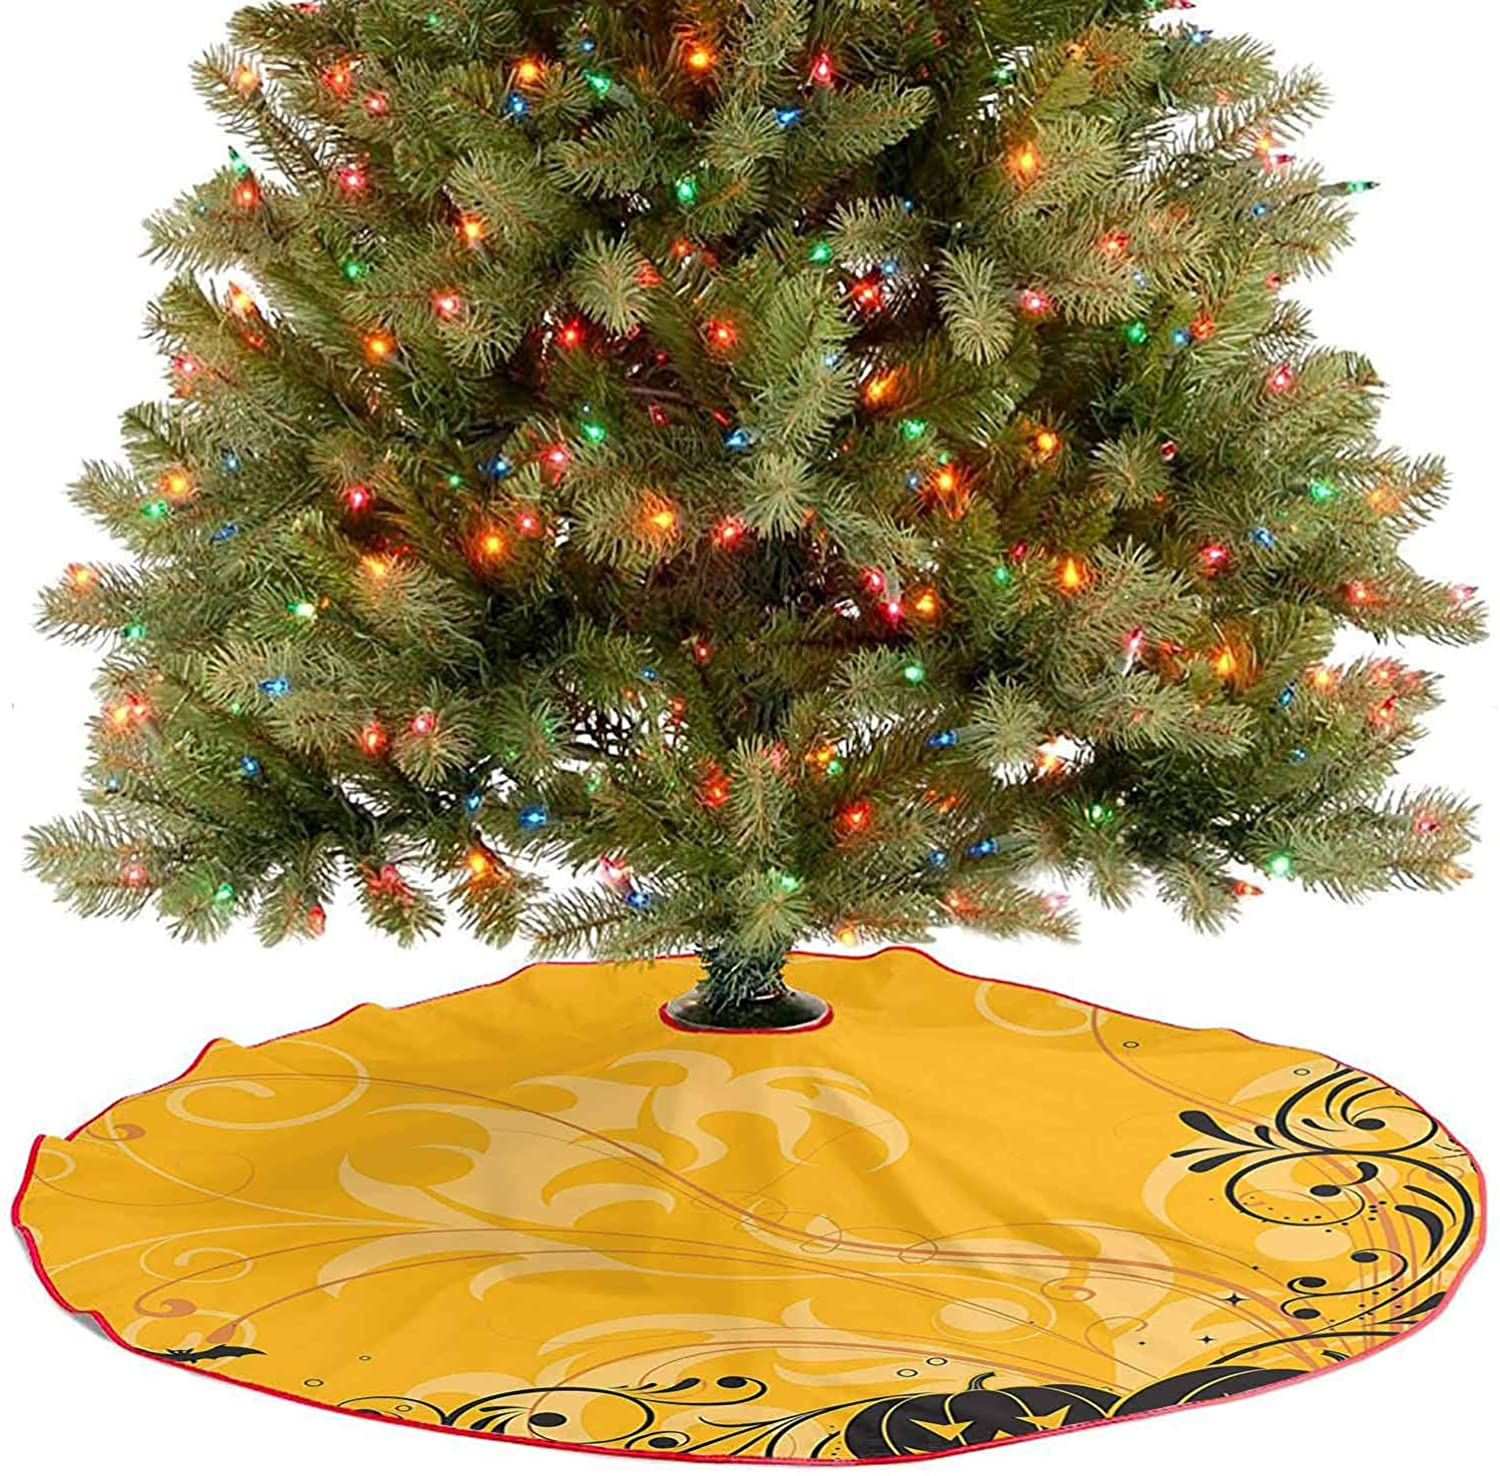 Modern Tree Skirt Carved Pumpkins with Floral Patterns Bats and Spider Web Horror Themed Artwork Orange Christmas Trees Mat Decorations Indoors Your Cat May Enjoy Laying on The Tree Skirt - 48 Inch